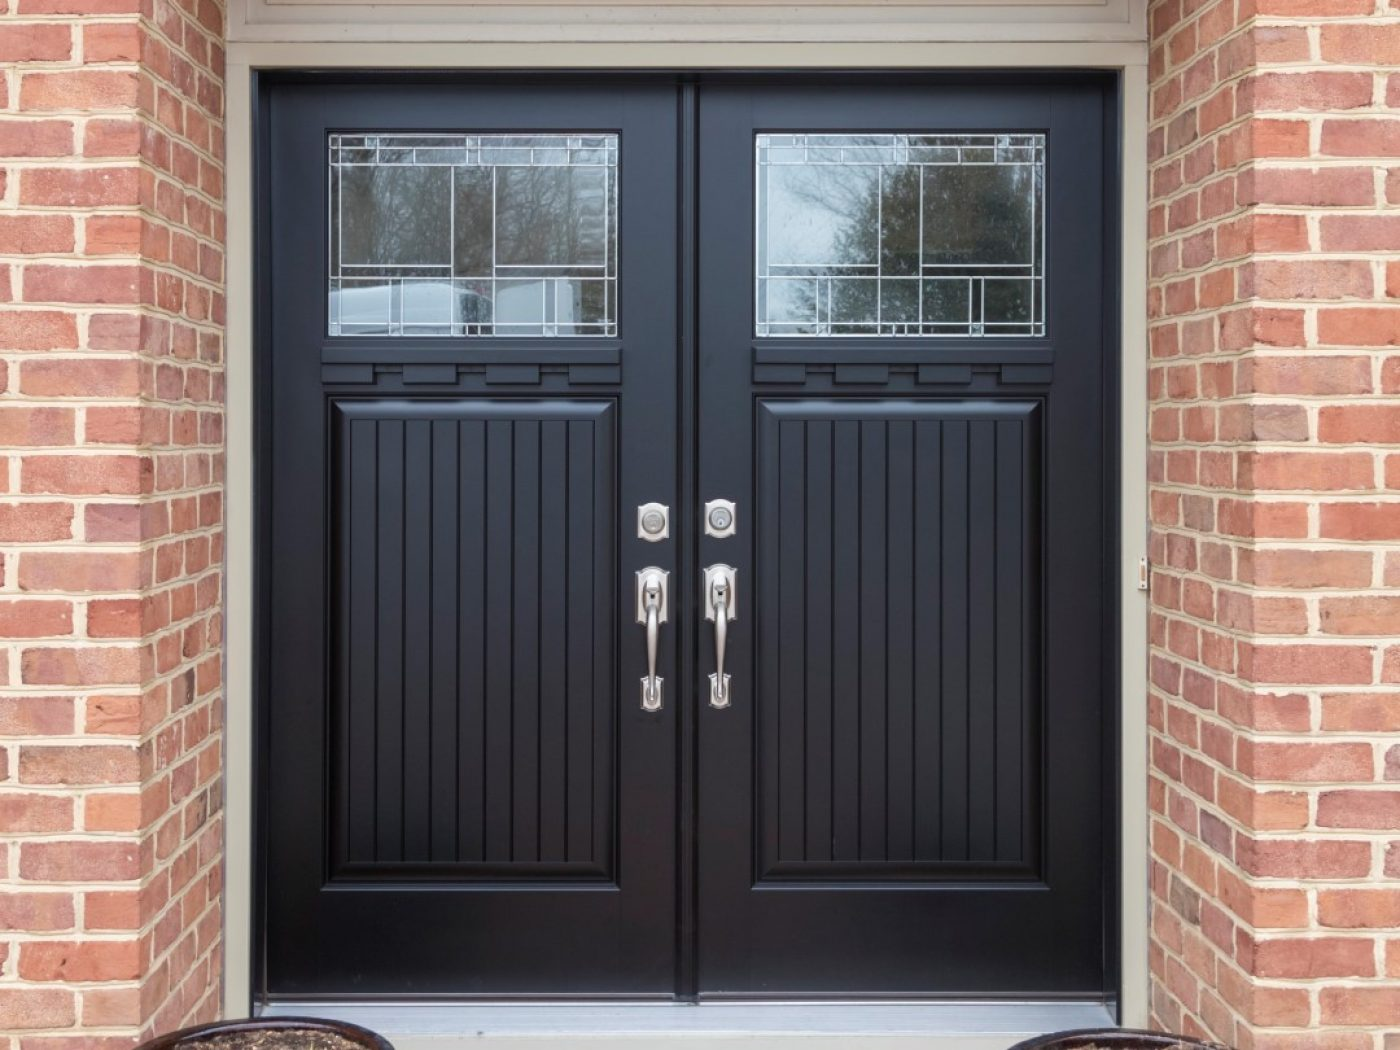 front view of black door